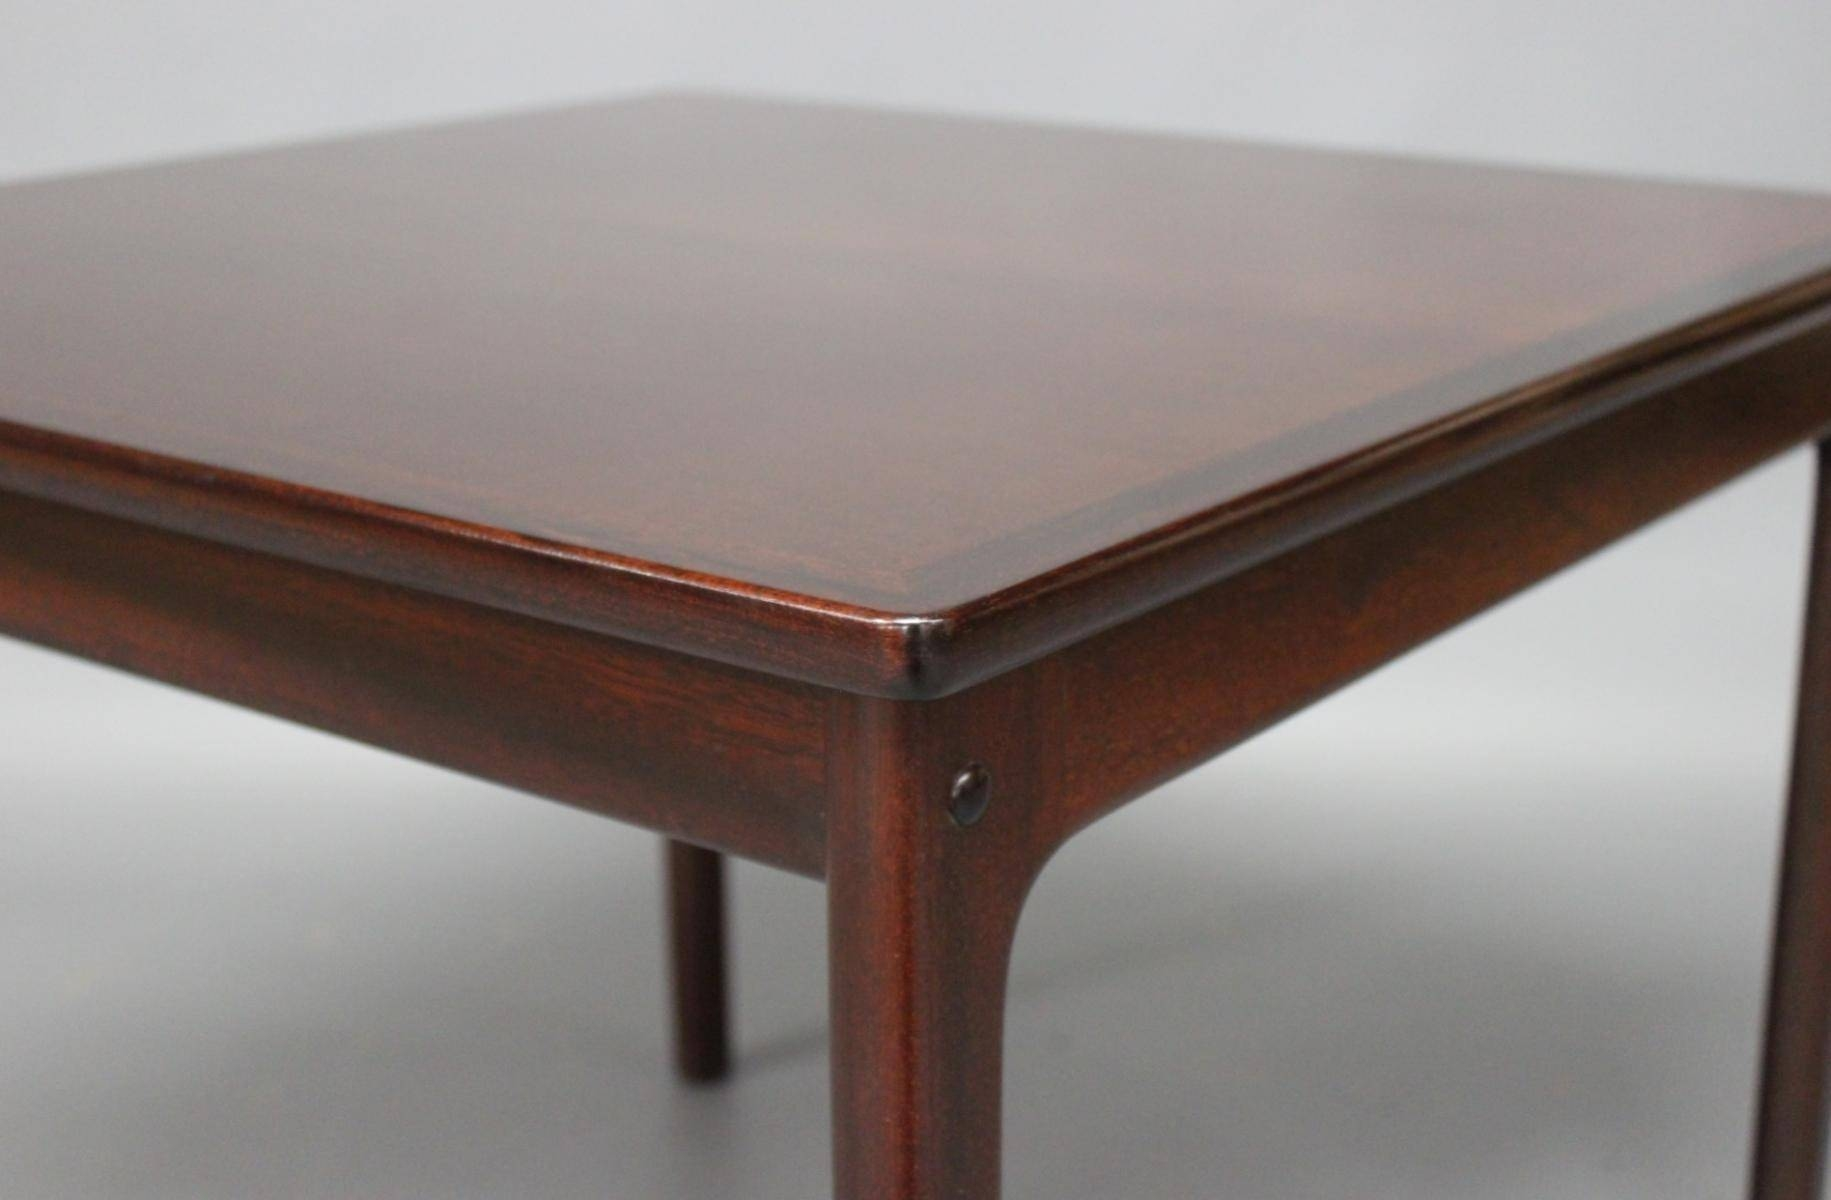 Mahogany Coffee Tableole Wanscher For P. Jeppesen, 1960S For pertaining to Mahogany Coffee Tables (Image 27 of 30)